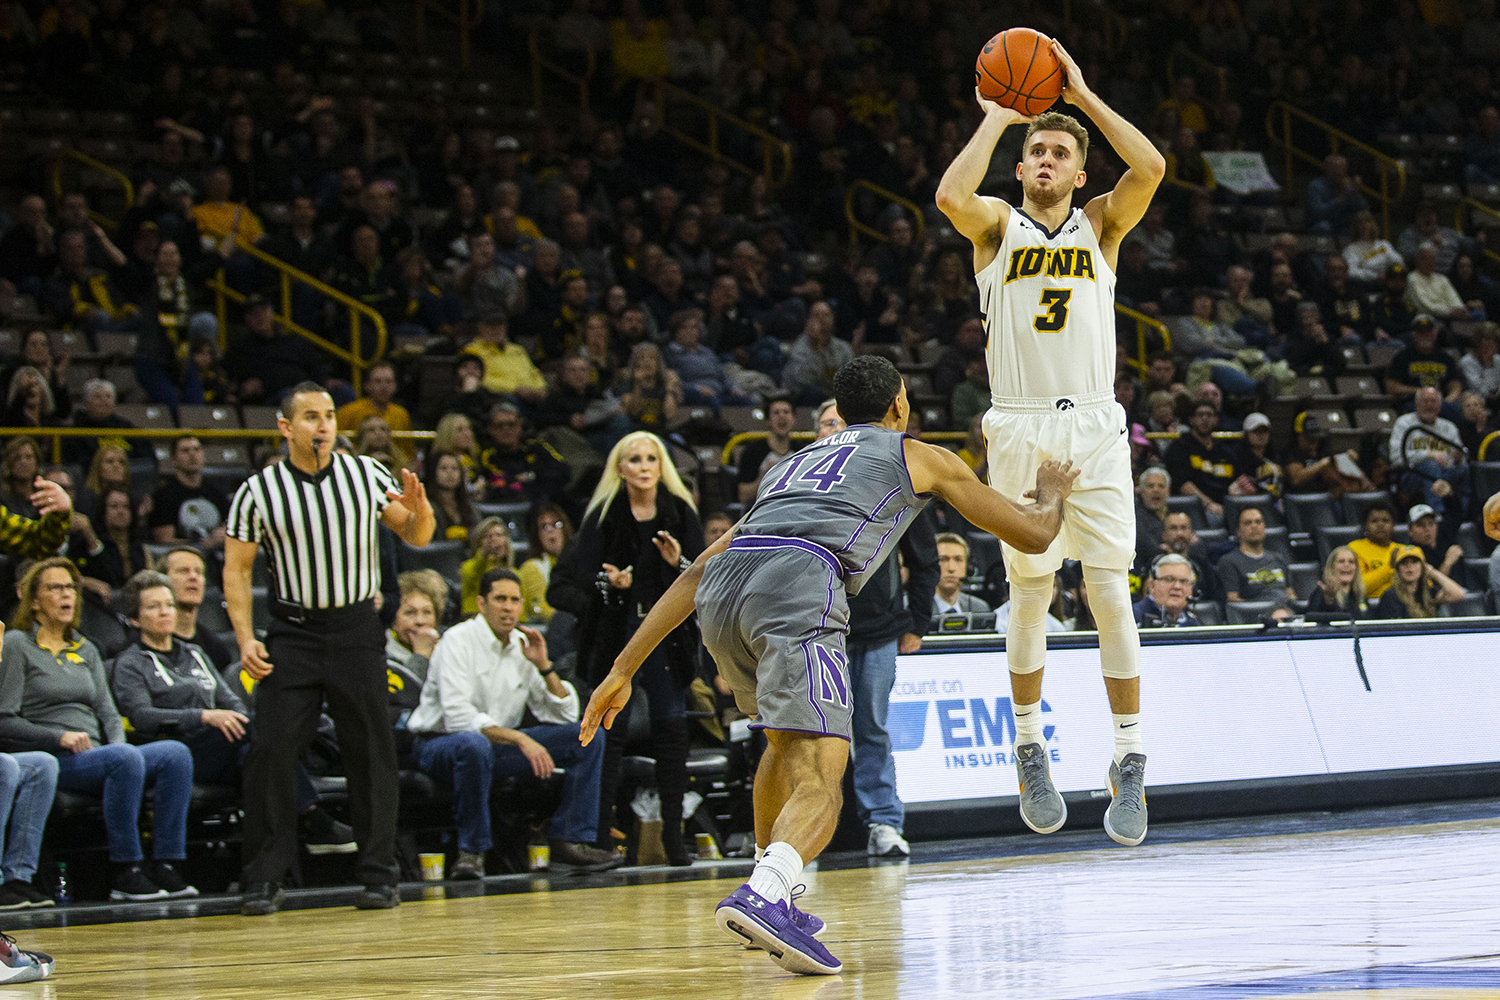 Iowa+guard+Jordan+Bohannon+attempts+a+3-pointer+during+the+Iowa%2FNorthwestern+men%27s+basketball+game+at+Carver-Hawkeye+Arena+on+Sunday%2C+February+10%2C+2019.+The+Hawkeyes+defeated+the+Wildcats%2C+80-79.+